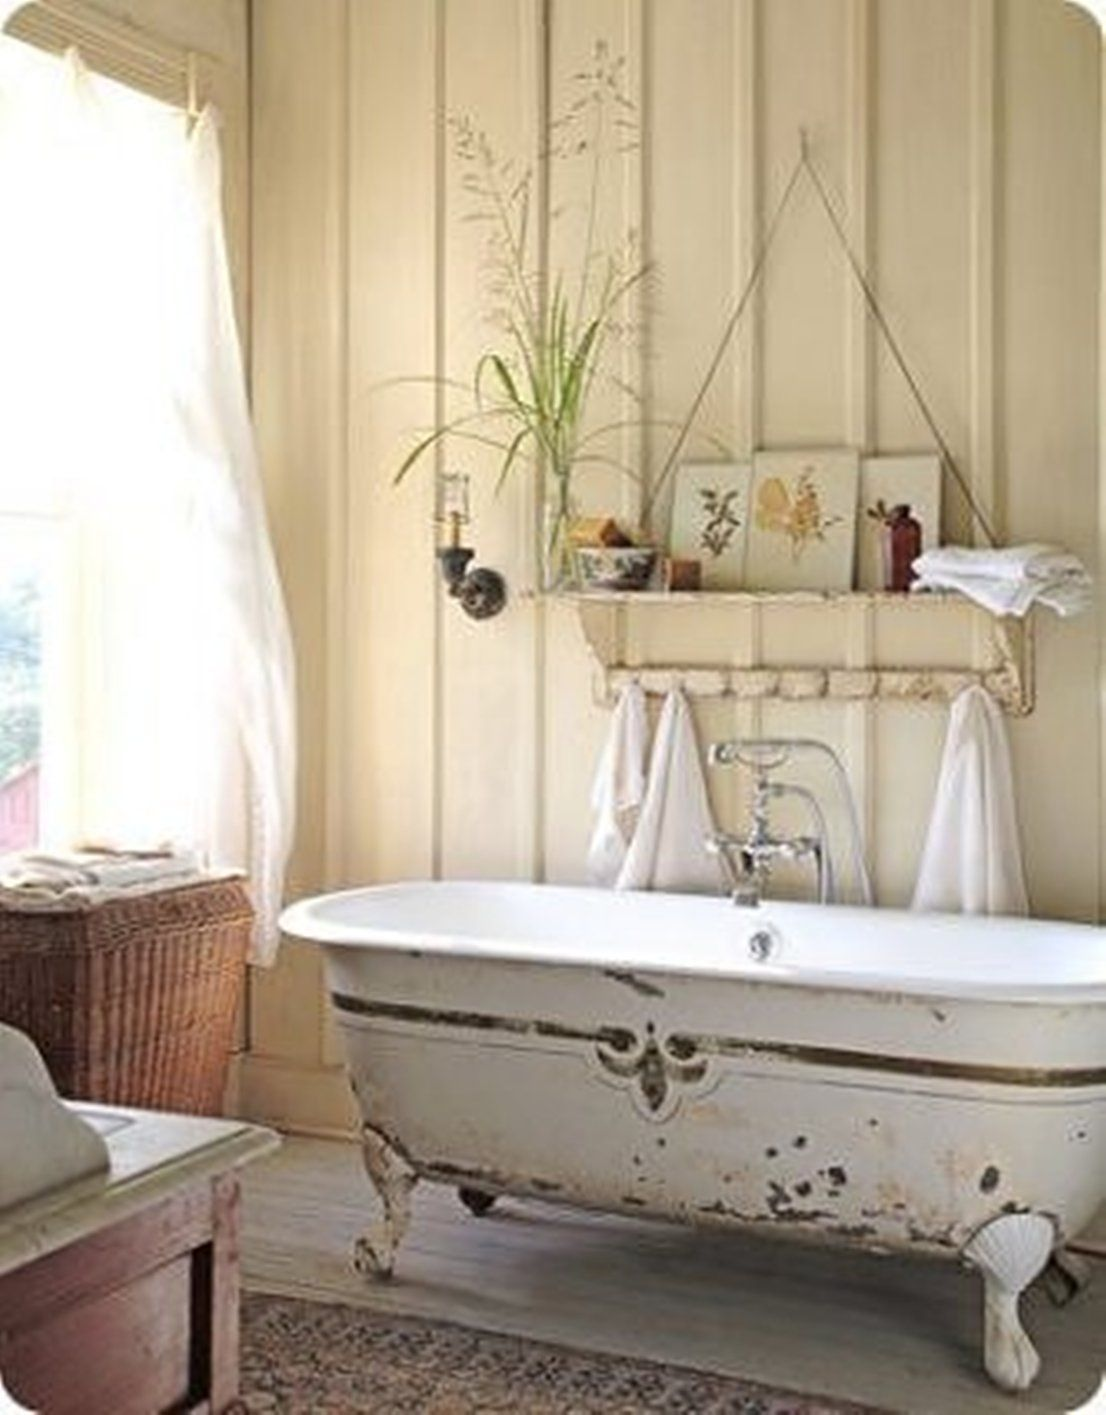 Small Vintage Bathroom Ideas Fascinating Bathroom Small Bathroom Makeovers Shabby Chic With Old Vintage Design Inspiration